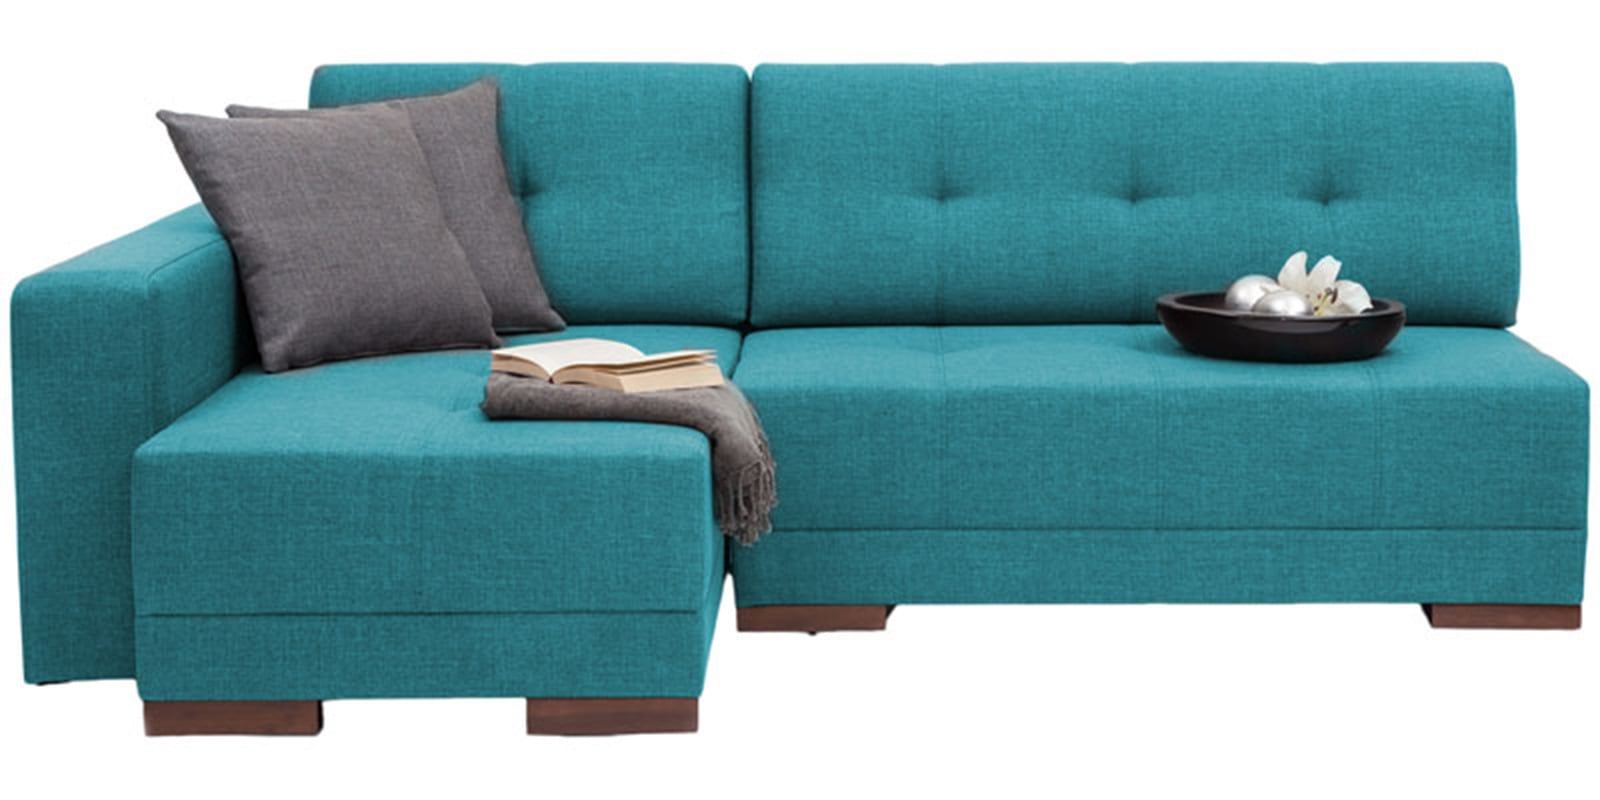 apollo rhs sectional sofa with left side chaise in blue colour